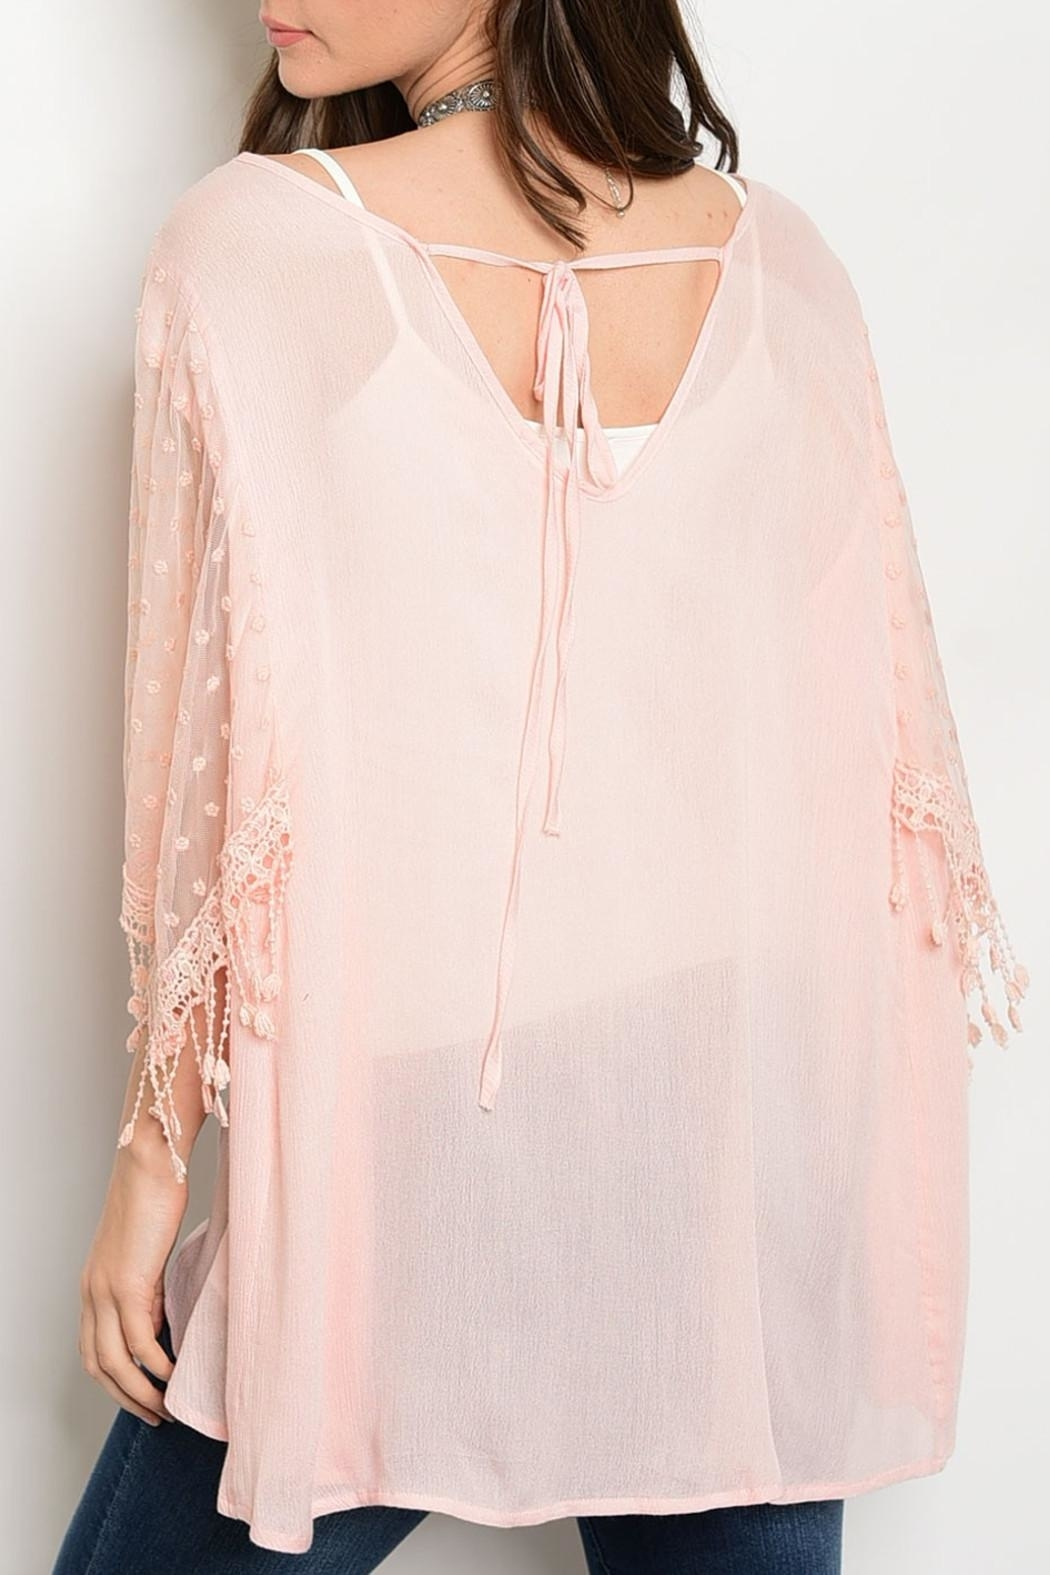 Soieblu Peach Mesh Top - Front Full Image